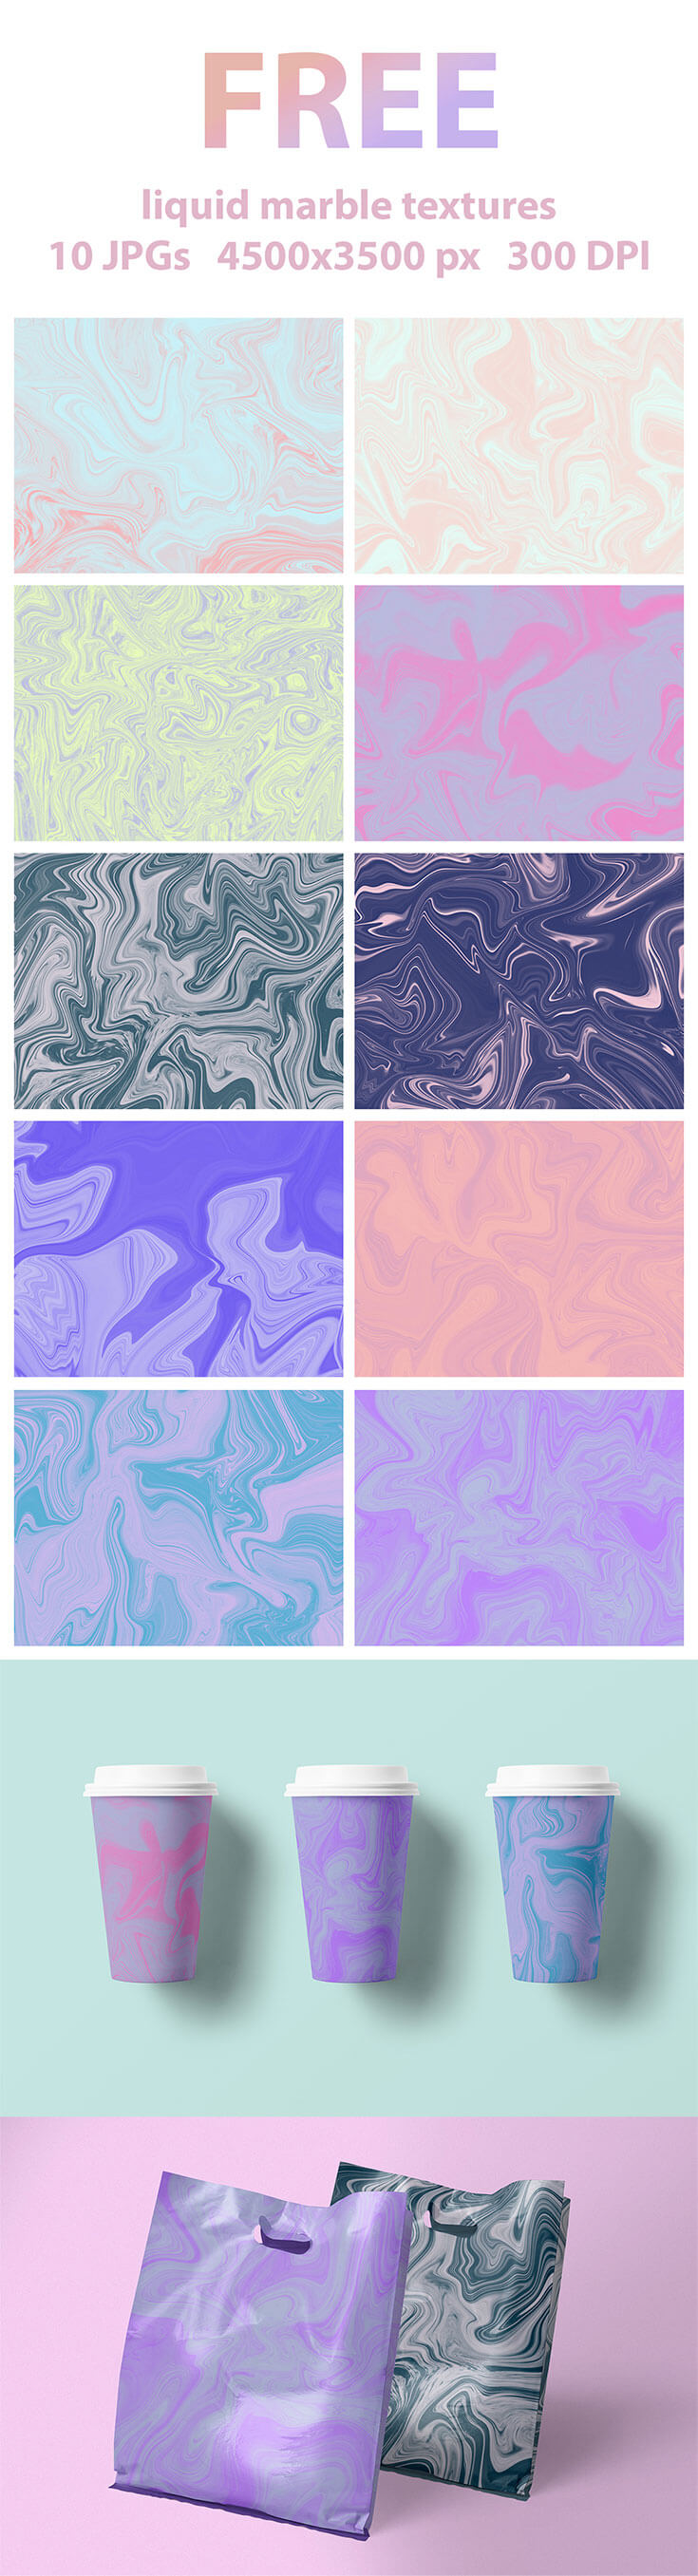 Free #Liquid #Marble #TexturesPackcontains 15 textures, great for distressing your graphic designs and illustrations. You can use them for backgrounds, business cards, textile printing, editorial design,greeting cards, banners, etc.